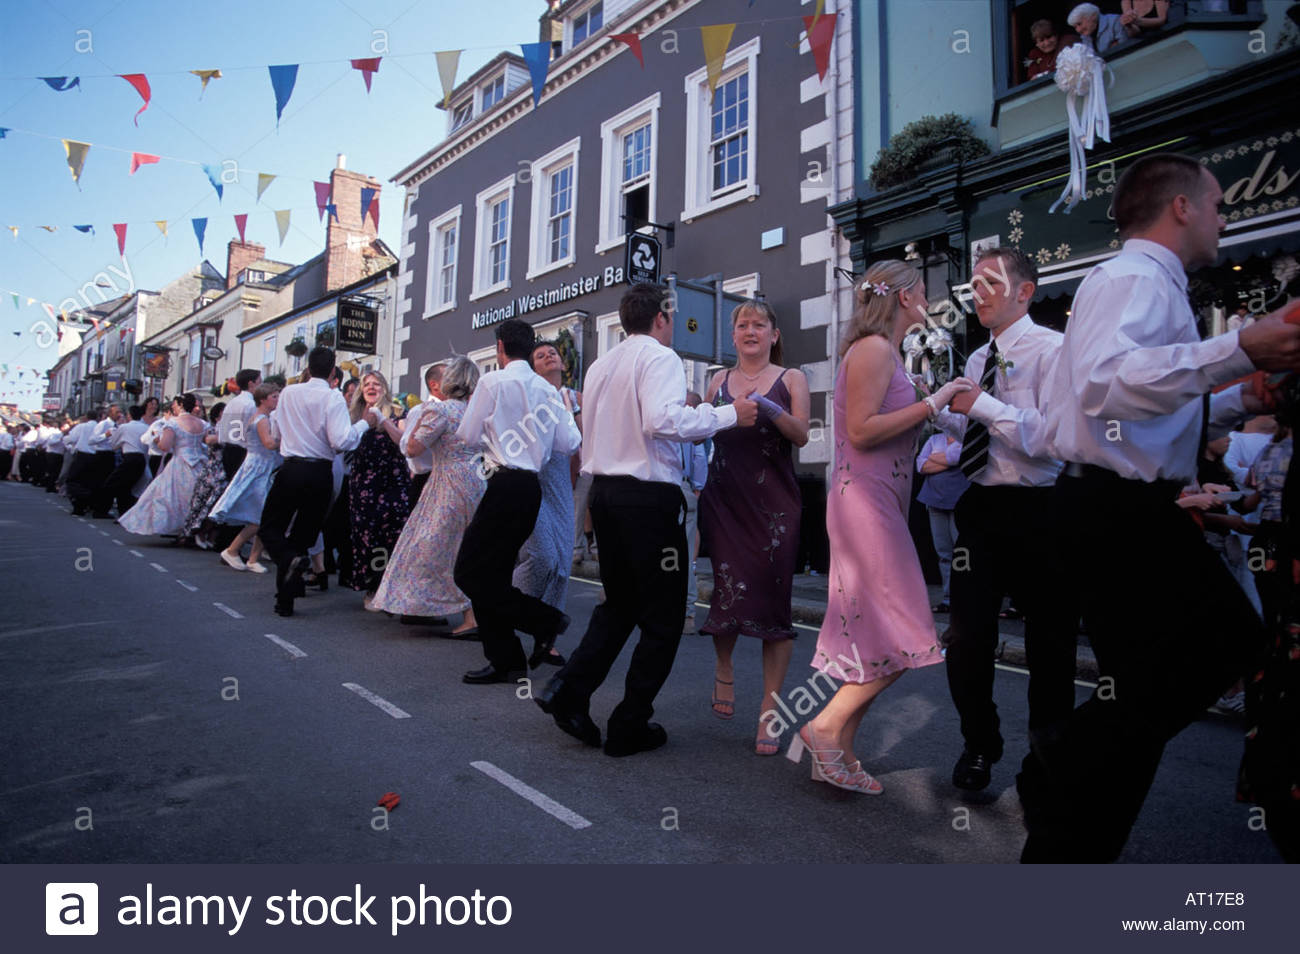 Floral Dance Helston Stock Photos & Floral Dance Helston Stock ...